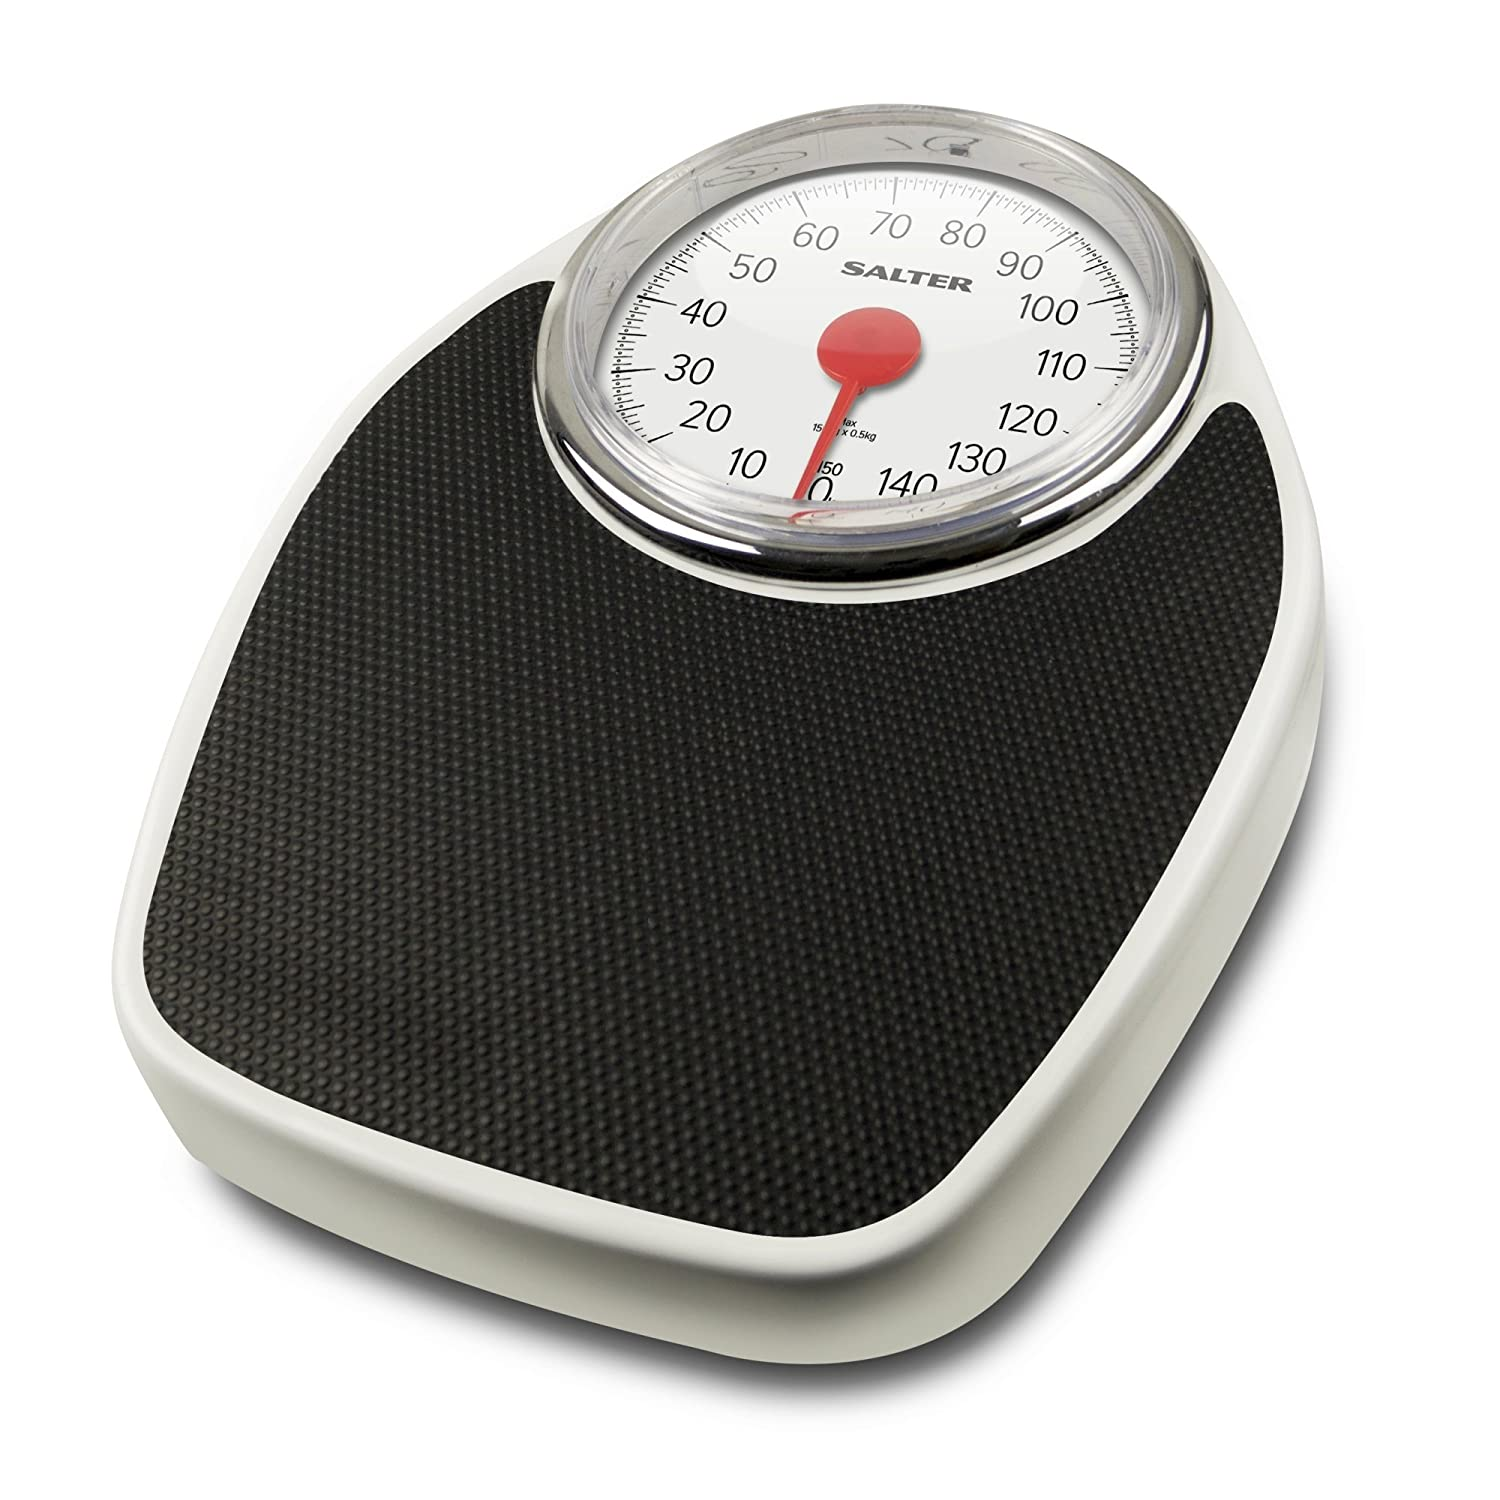 Salter Doctor Style Mechanical Bathroom Scales – Retro White + Black Accurate Weighing, Easy to Read Analogue Dial, Sturdy Metal Platform, Weigh up to 150 kg, No Buttons or Batteries, Hassle Free FKA Brands Ltd 195 WHKR